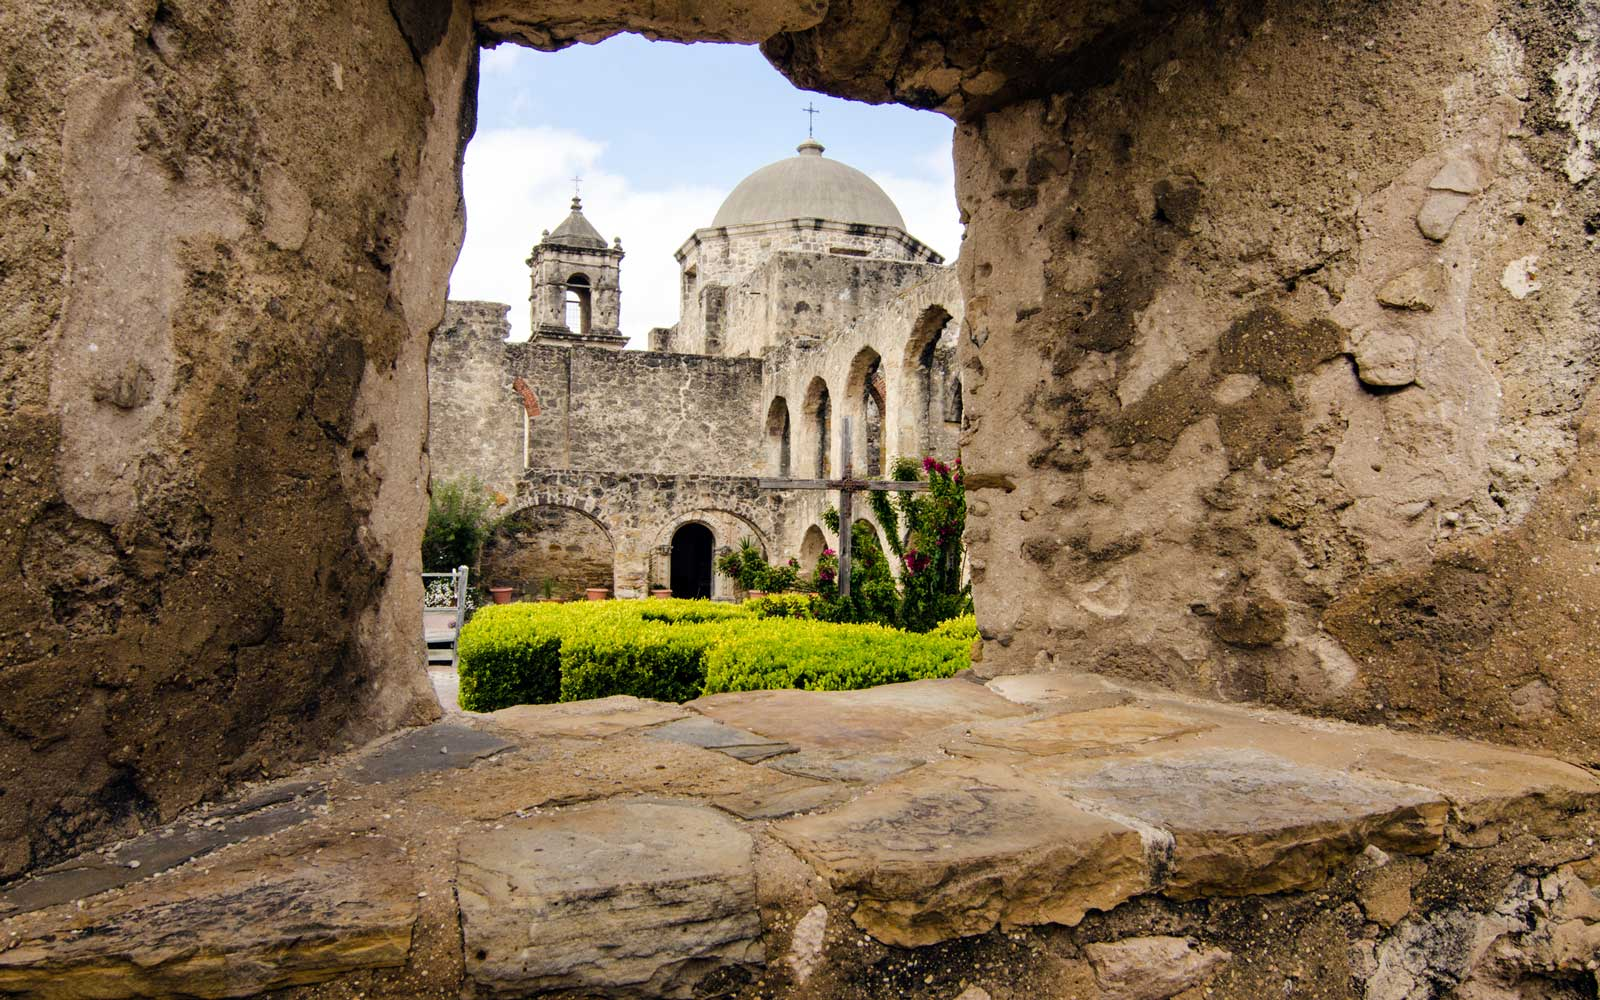 San Jose Mission is a Spanish Colonial Mission located in San Antonio, Texas, UNESCO as a World Heritage Site.